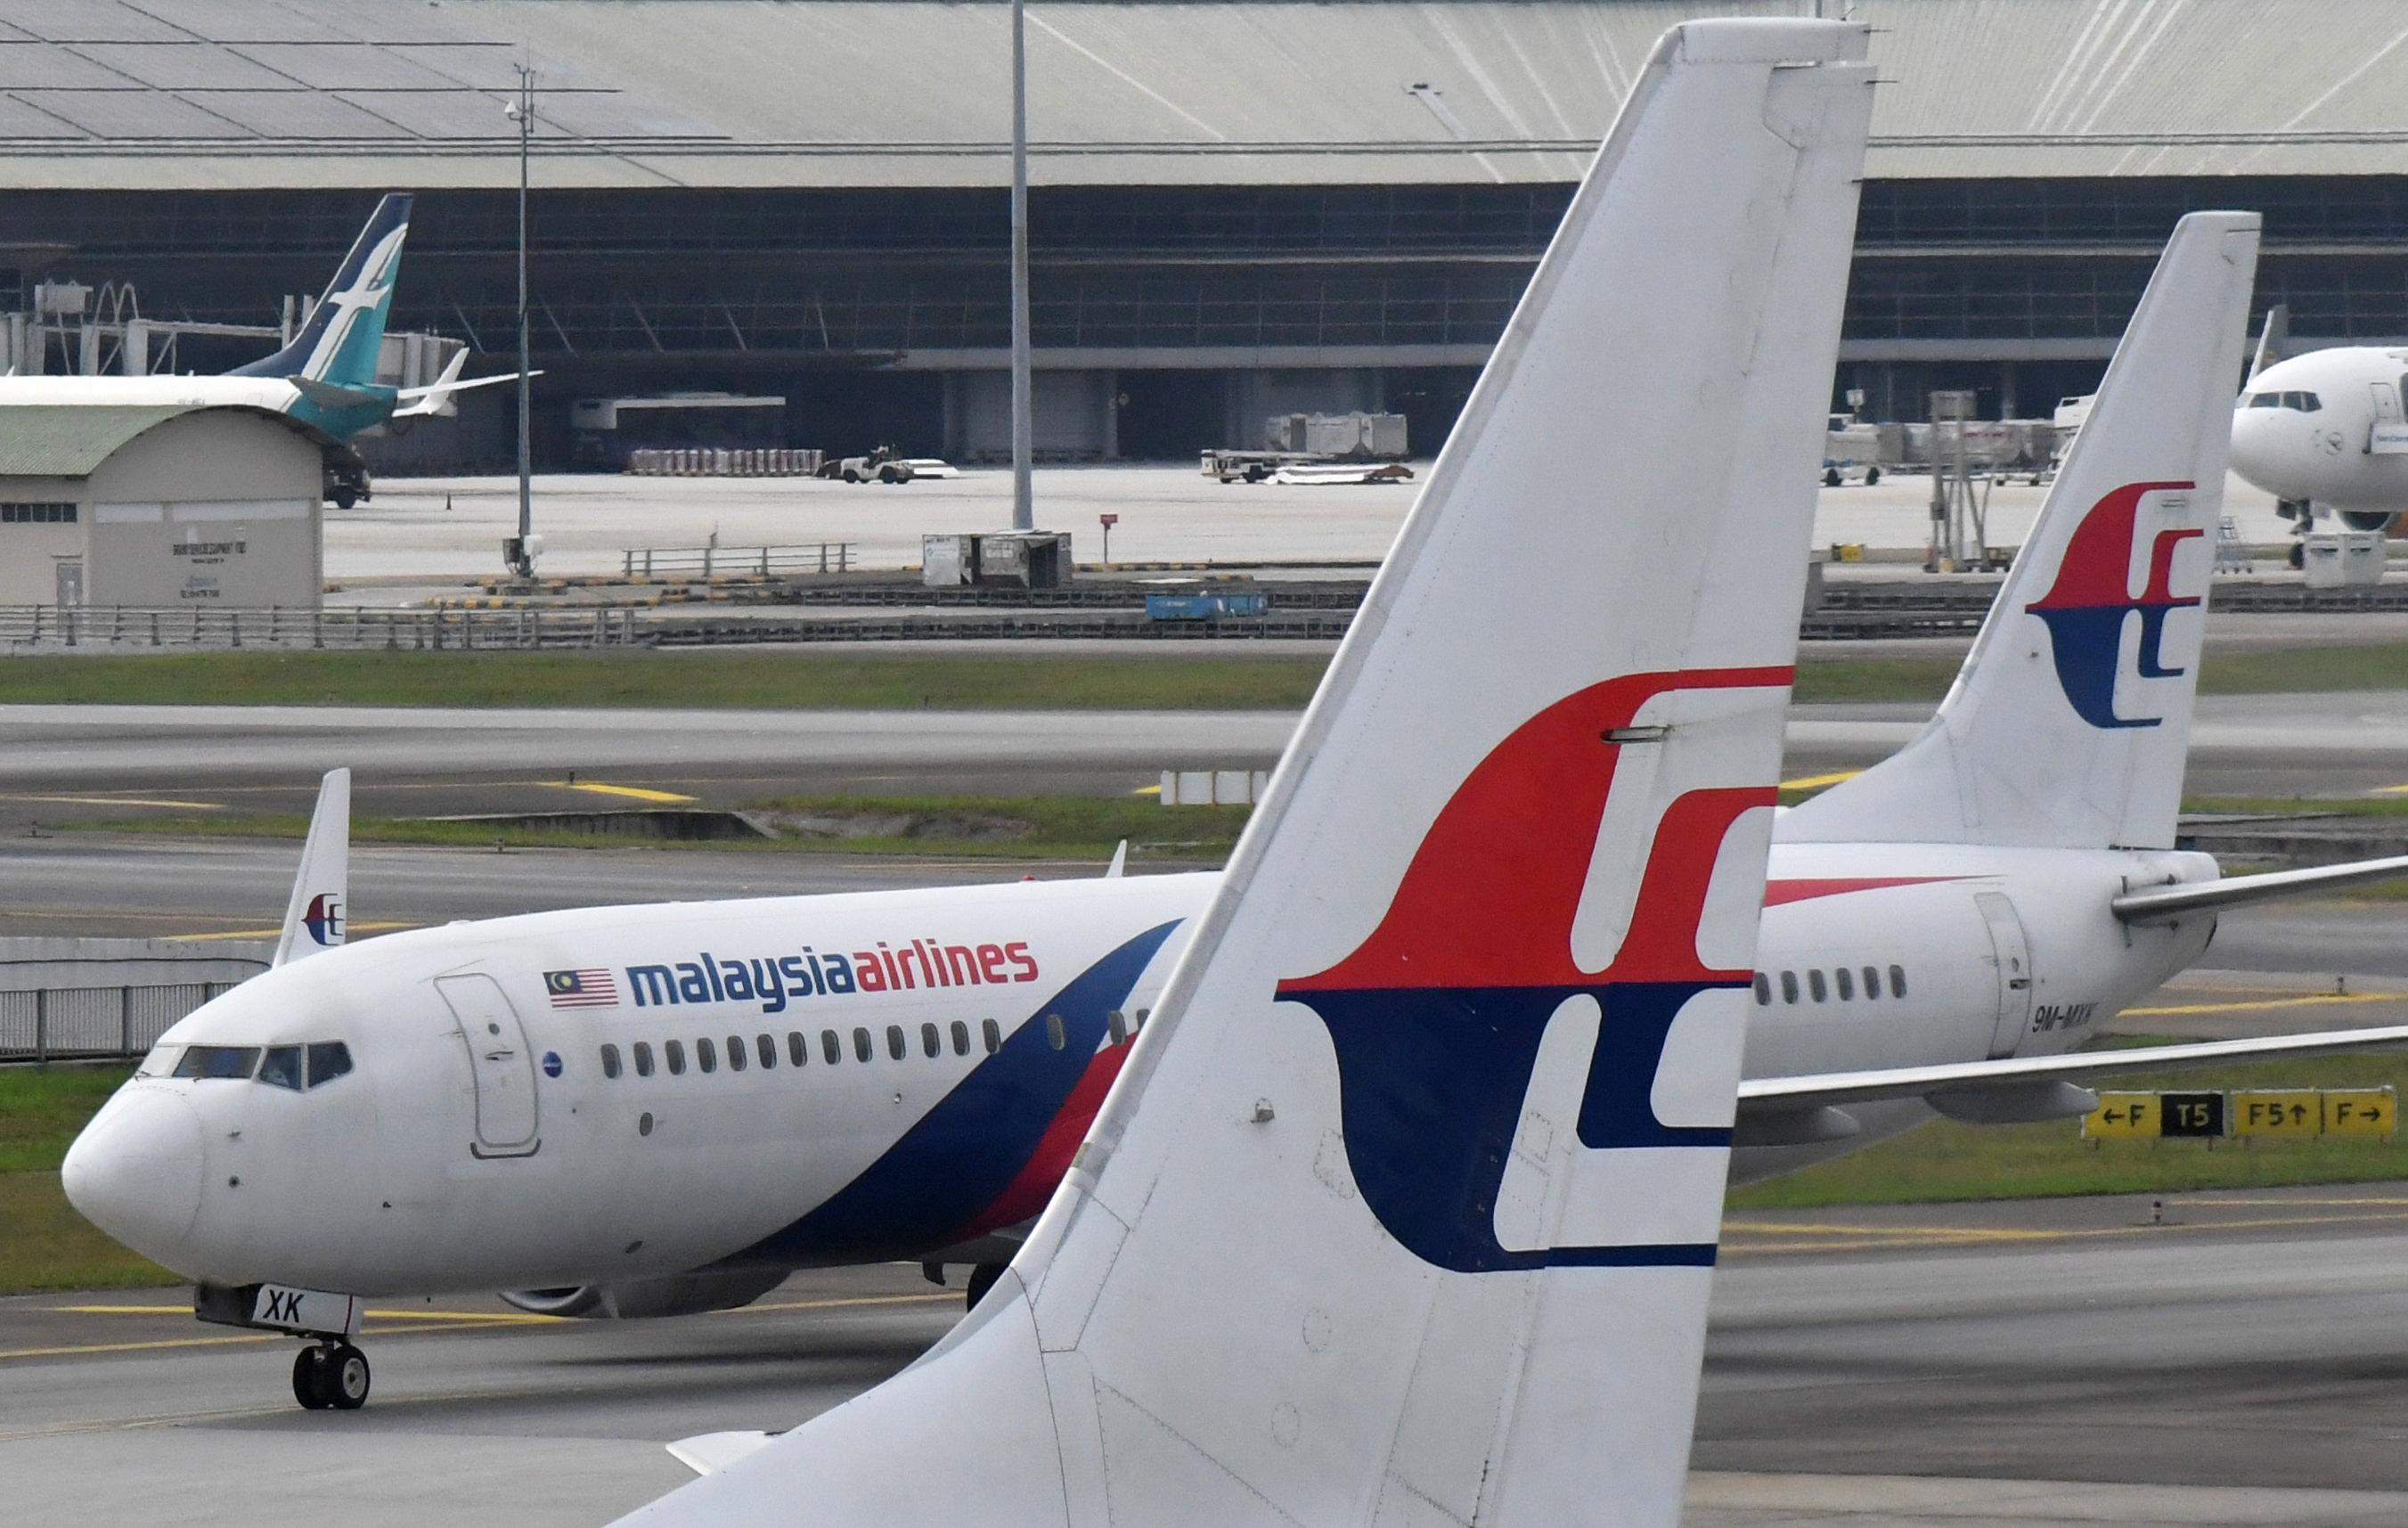 Singapore Airlines, Malaysia Airlines sign codeshare pact